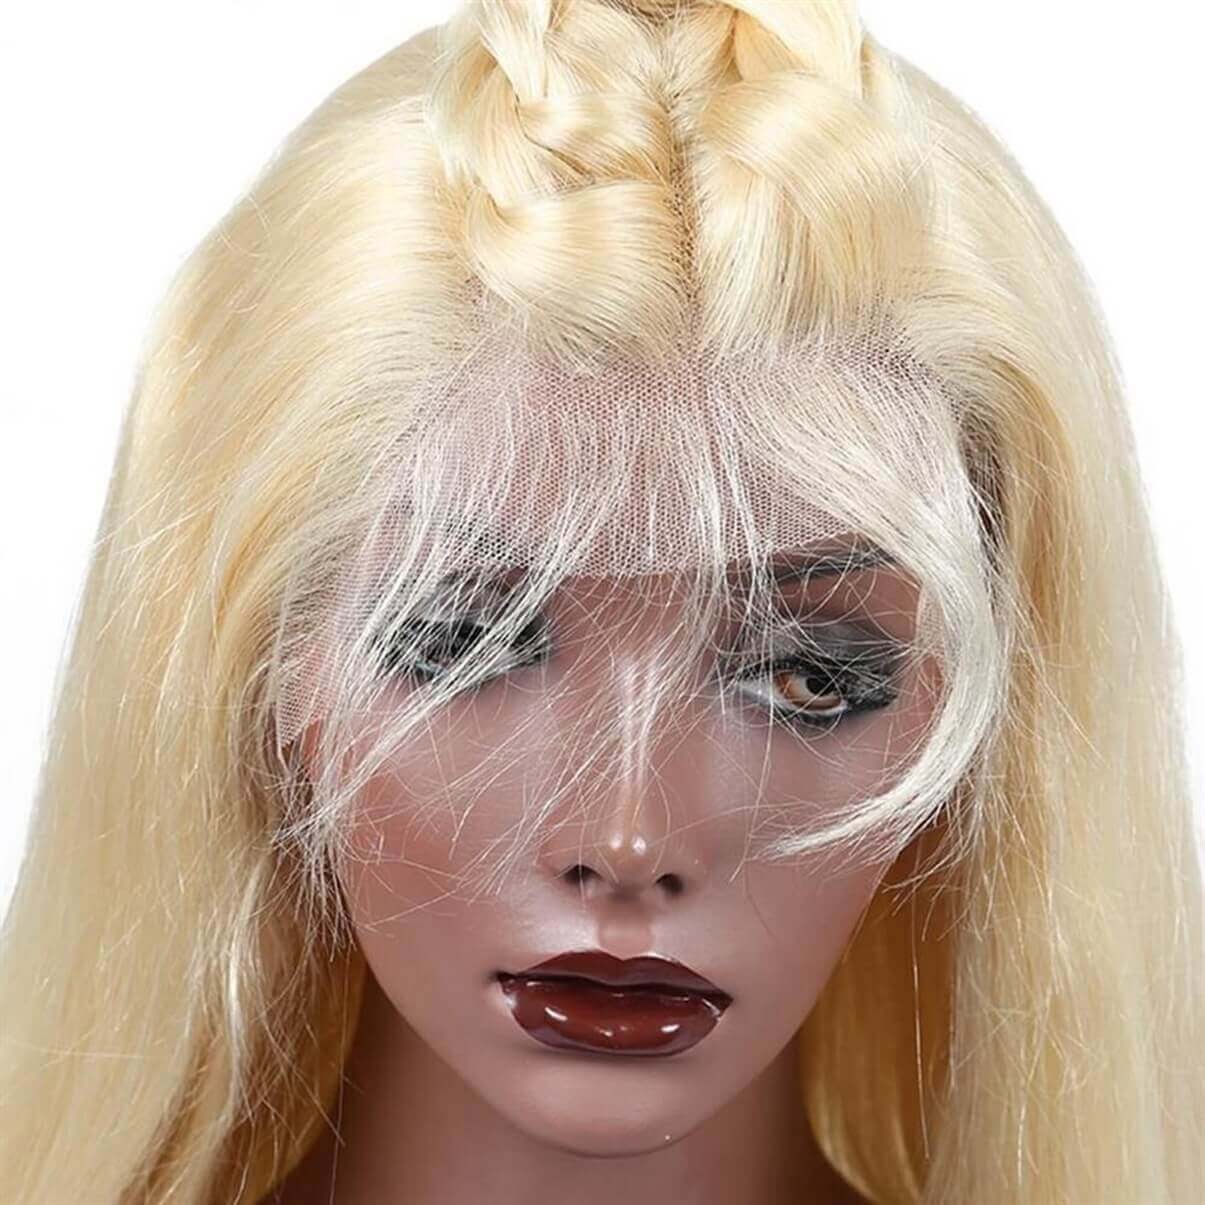 Lakihair 613 Blonde Body Wave Lace Wigs Pre Plucked Glueless Lace Front Human Hair Wigs